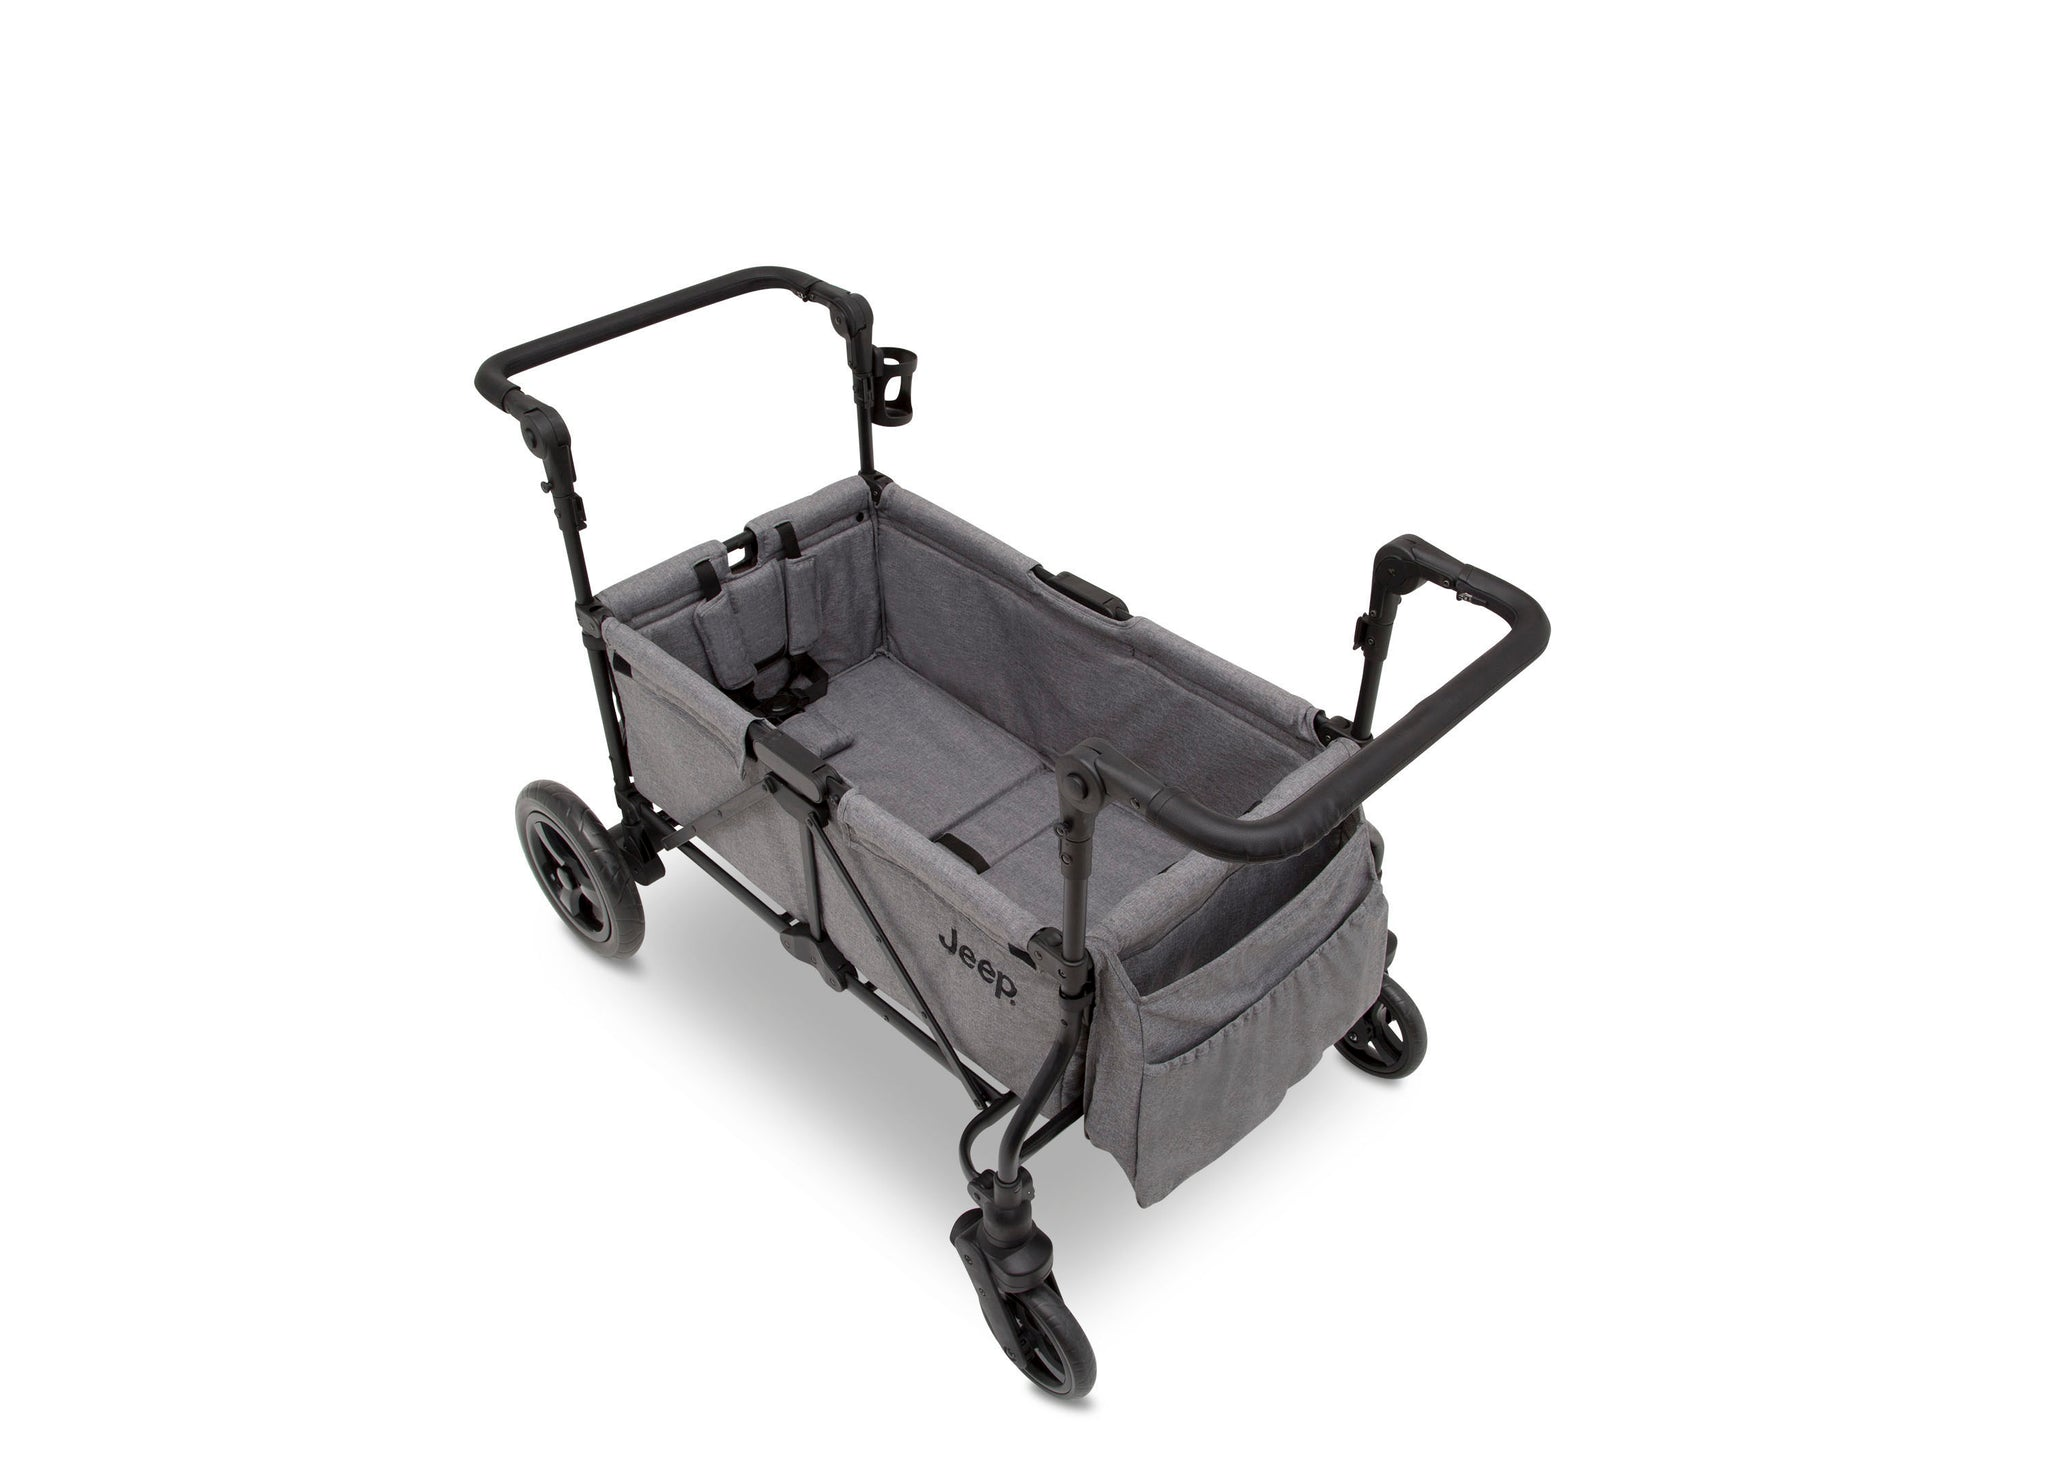 Jeep Wrangler Stroller Wagon by Delta Children, Grey (2148), Durable frame holds up to 110 pounds